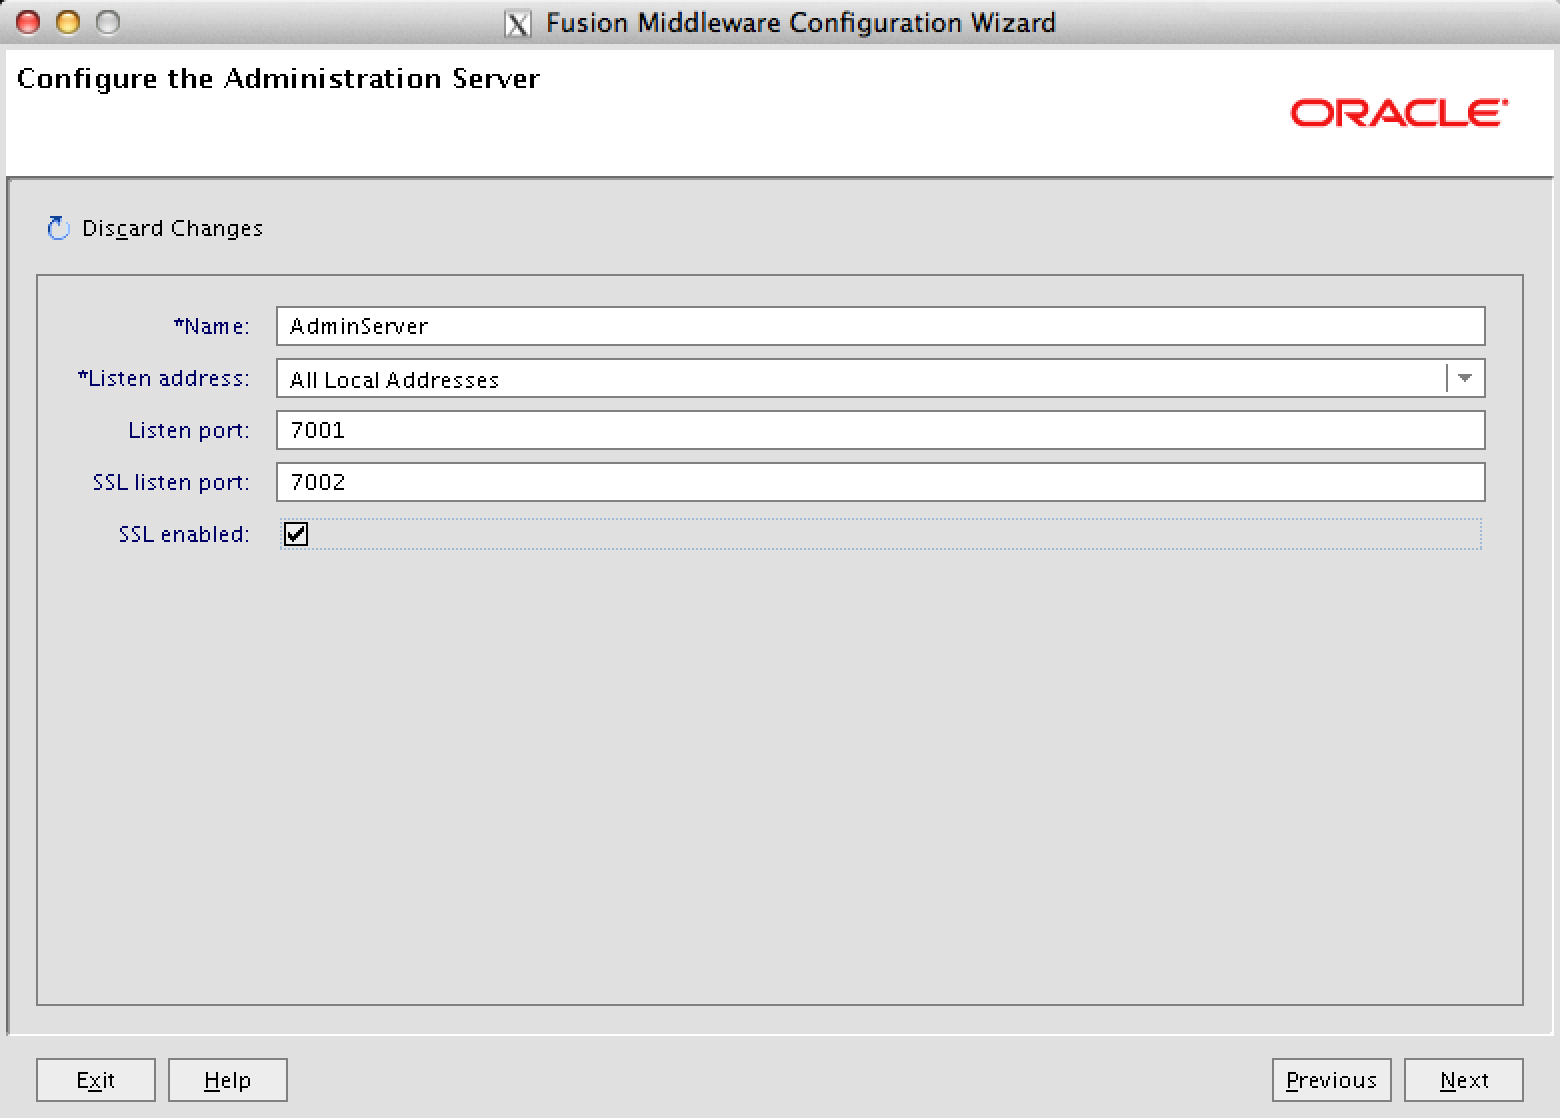 Configuration Oracle SOA suite 11gR1 release 11.1.0.6